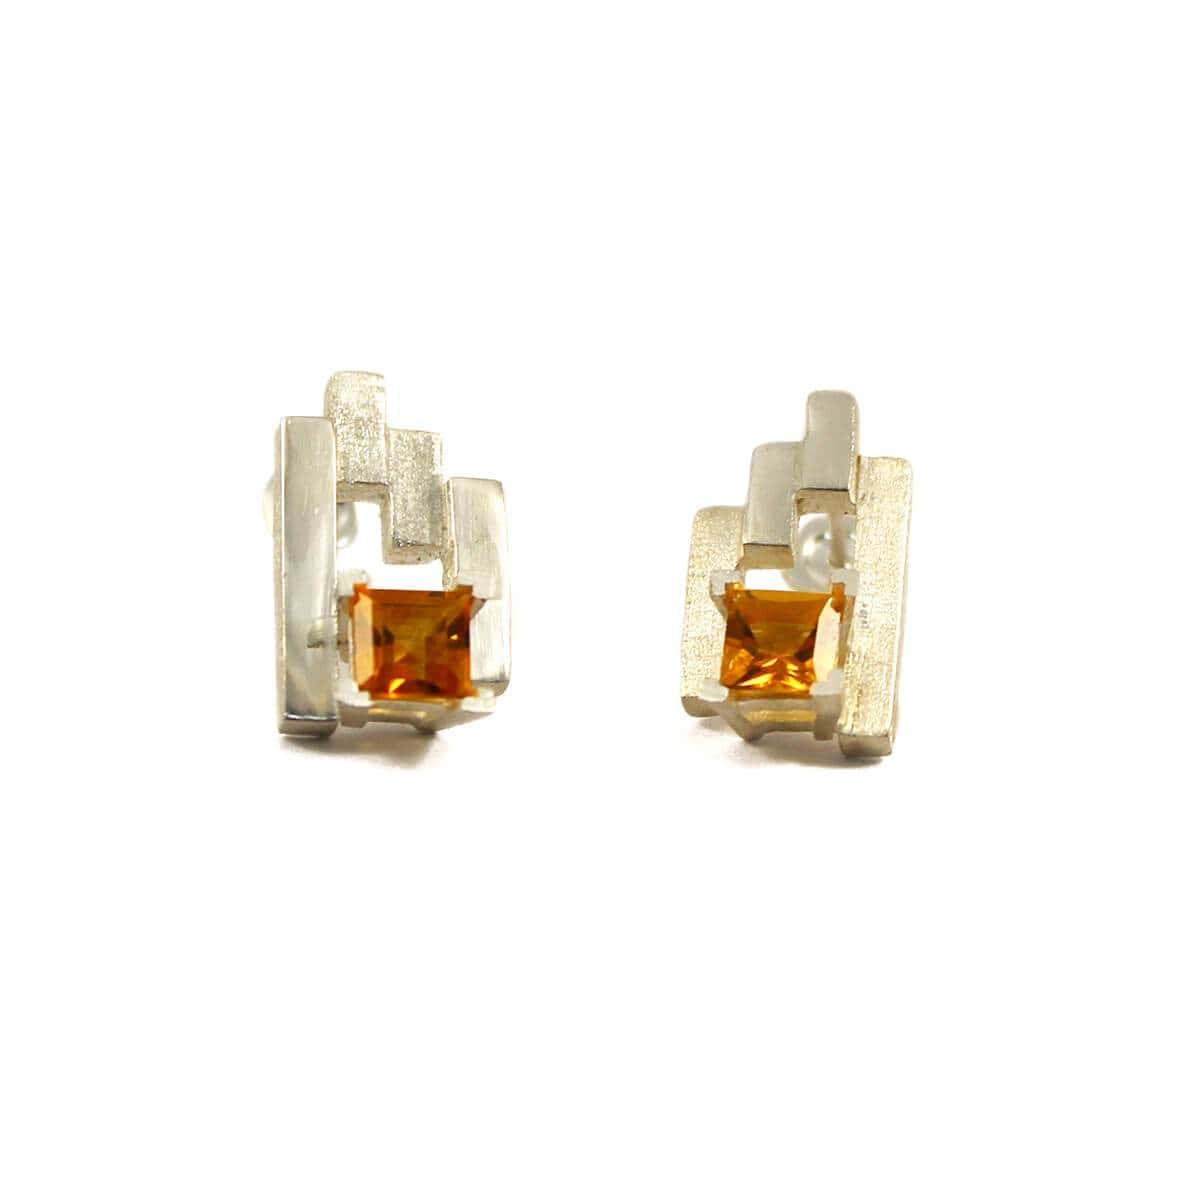 Silver SEVEN Stud Earrings With Citrine